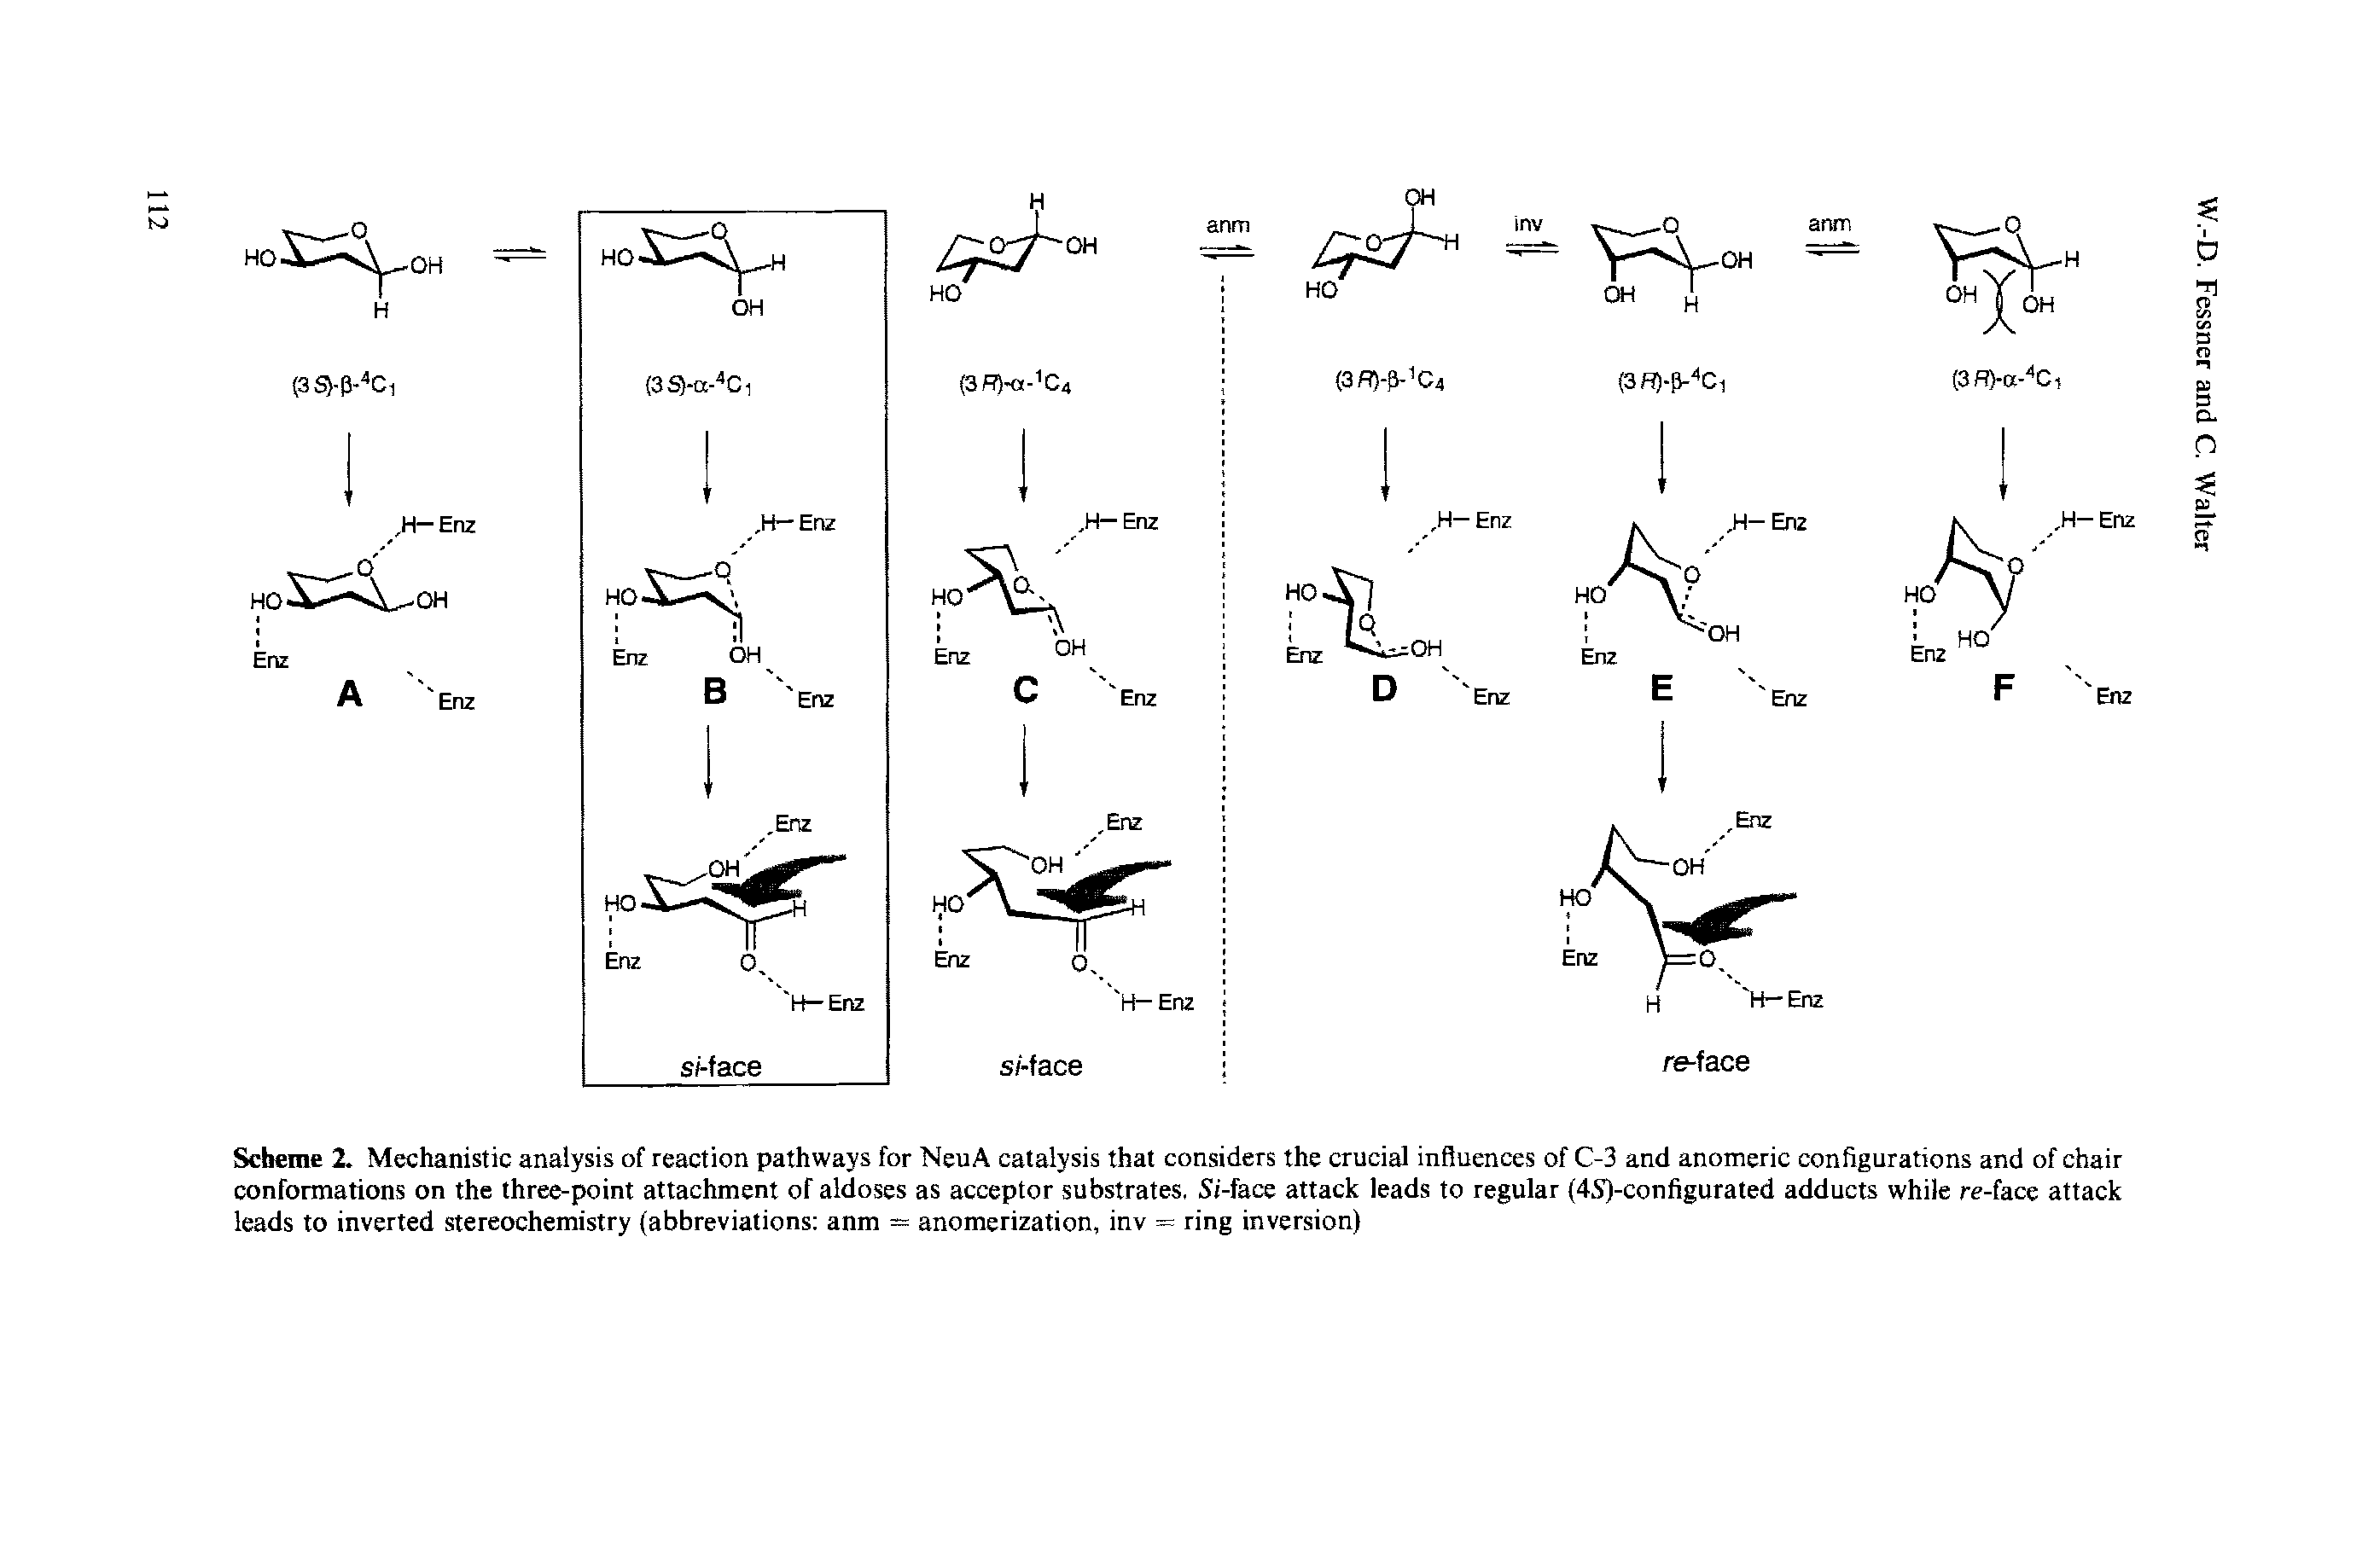 "Scheme 2. <a href=""/info/mechanistic_analysis"">Mechanistic analysis</a> of <a href=""/info/reaction_pathways"">reaction pathways</a> for NeuA catalysis that considers the crucial influences of C-3 and <a href=""/info/anomeric_configuration"">anomeric configurations</a> and of <a href=""/info/chair_conformation"">chair conformations</a> on the <a href=""/info/attachment_three_point"">three-point attachment</a> of aldoses as <a href=""/info/acceptor_substrate"">acceptor substrates</a>, Si-<a href=""/info/re_face_attack"">face attack</a> leads to regular (4S)-configurated adducts while re-<a href=""/info/re_face_attack"">face attack</a> leads to inverted stereochemistry (abbreviations anm = anomerization, inv = ring inversion)"